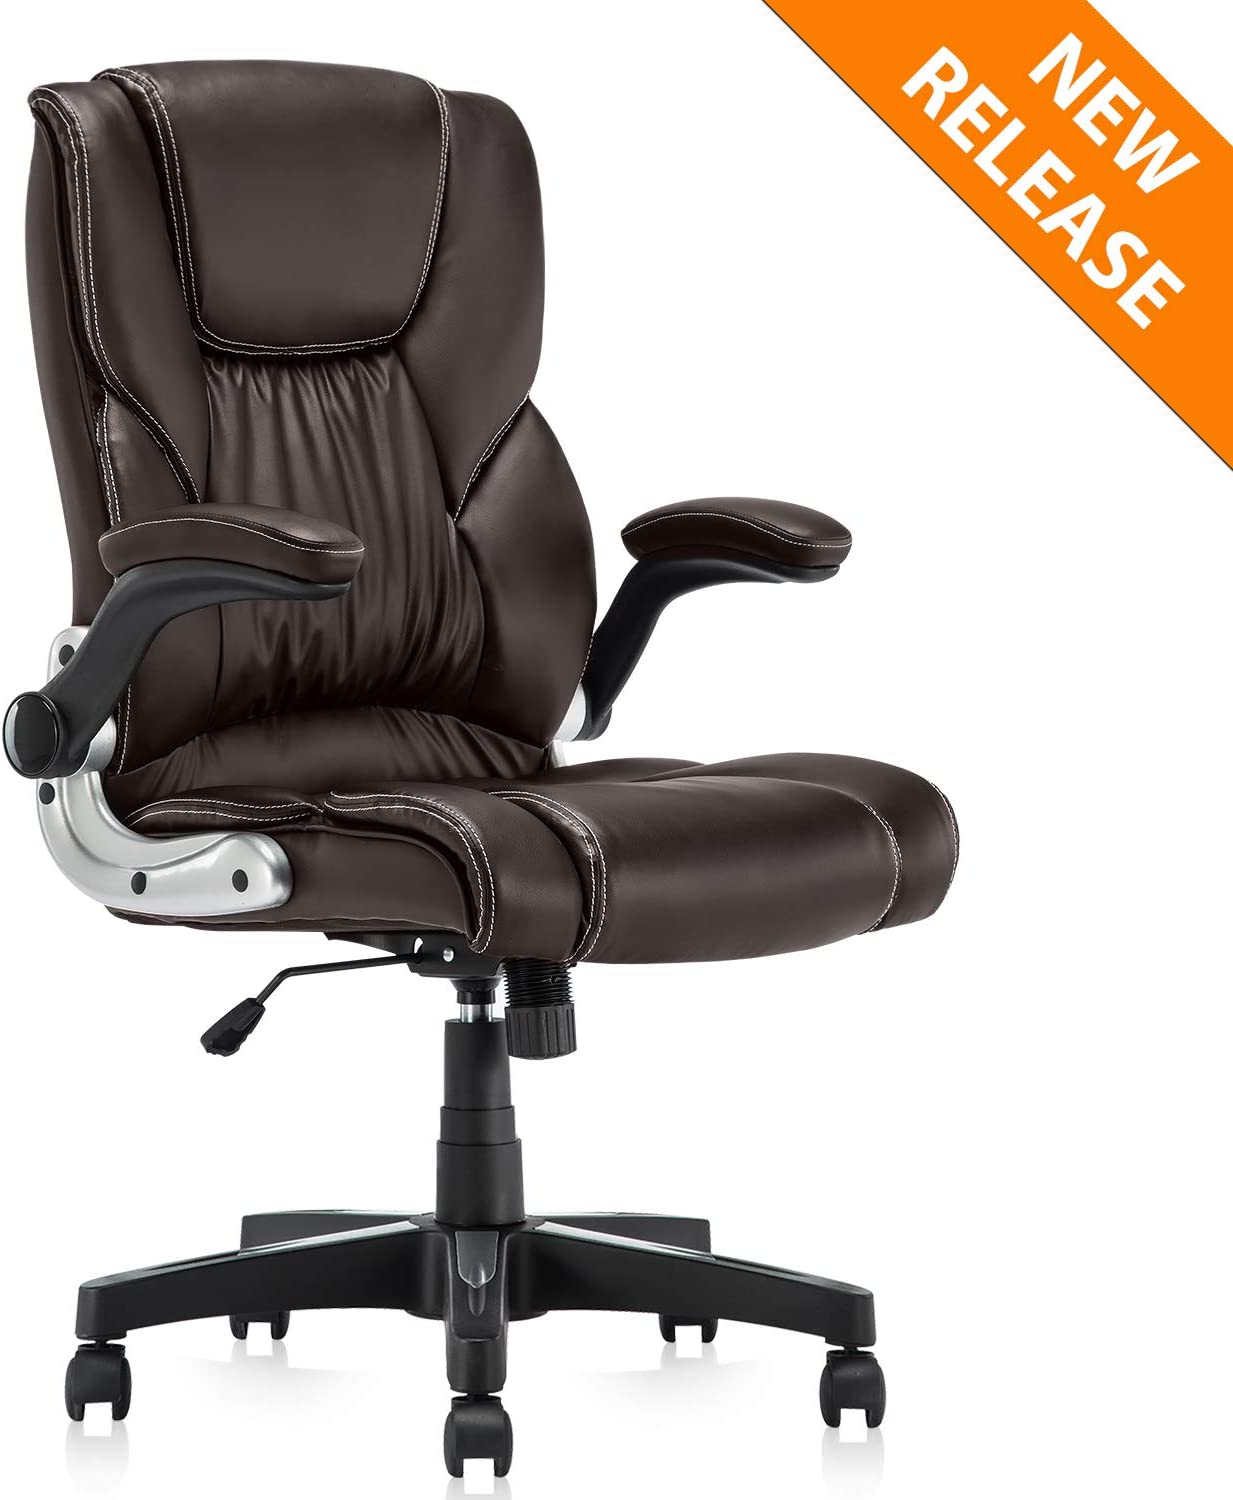 PU Leather Computer Office Chair Adjustable High Armchair Desk Chair Guest Chair